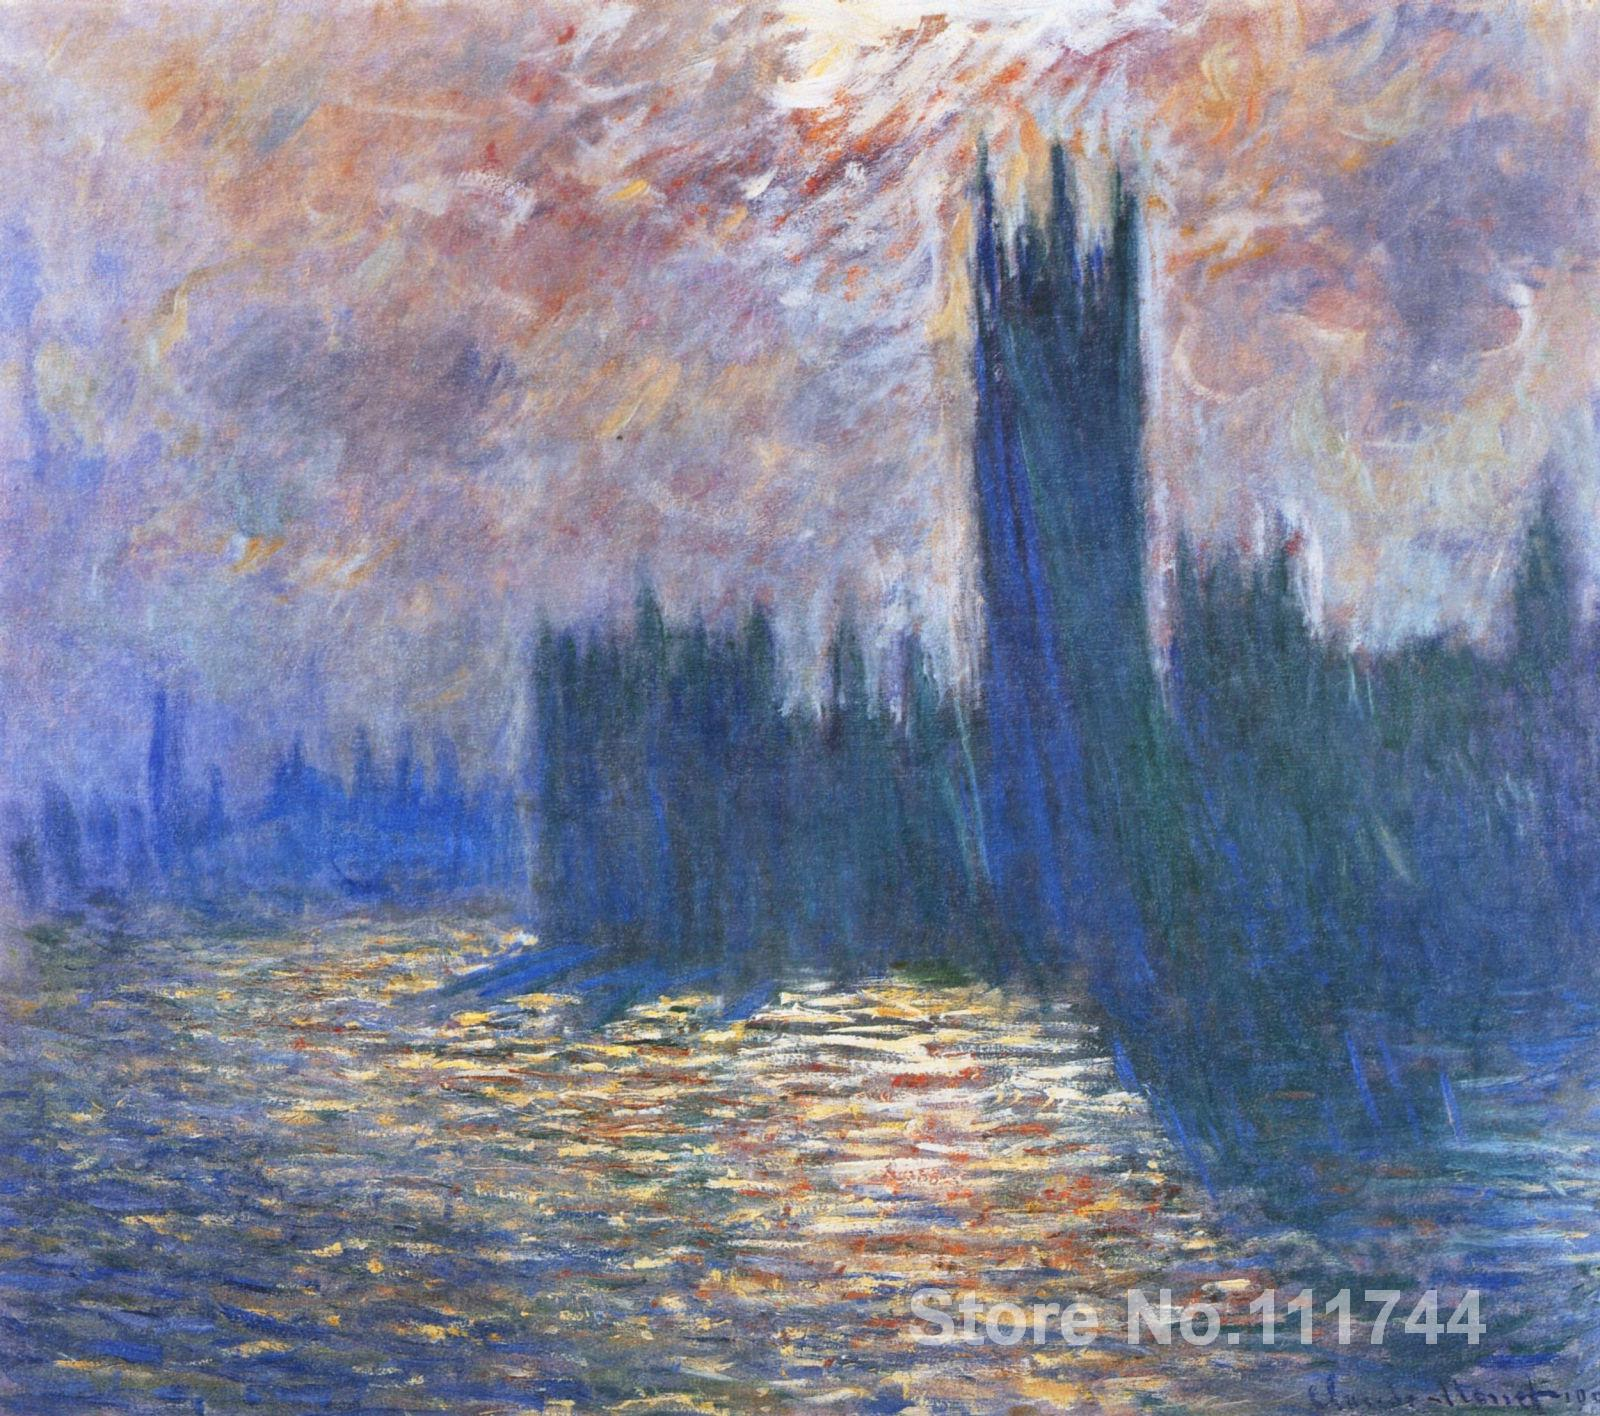 Landscape painting Impressionist Parliament Reflections on the Thames Claude Monet High quality Hand paintedLandscape painting Impressionist Parliament Reflections on the Thames Claude Monet High quality Hand painted